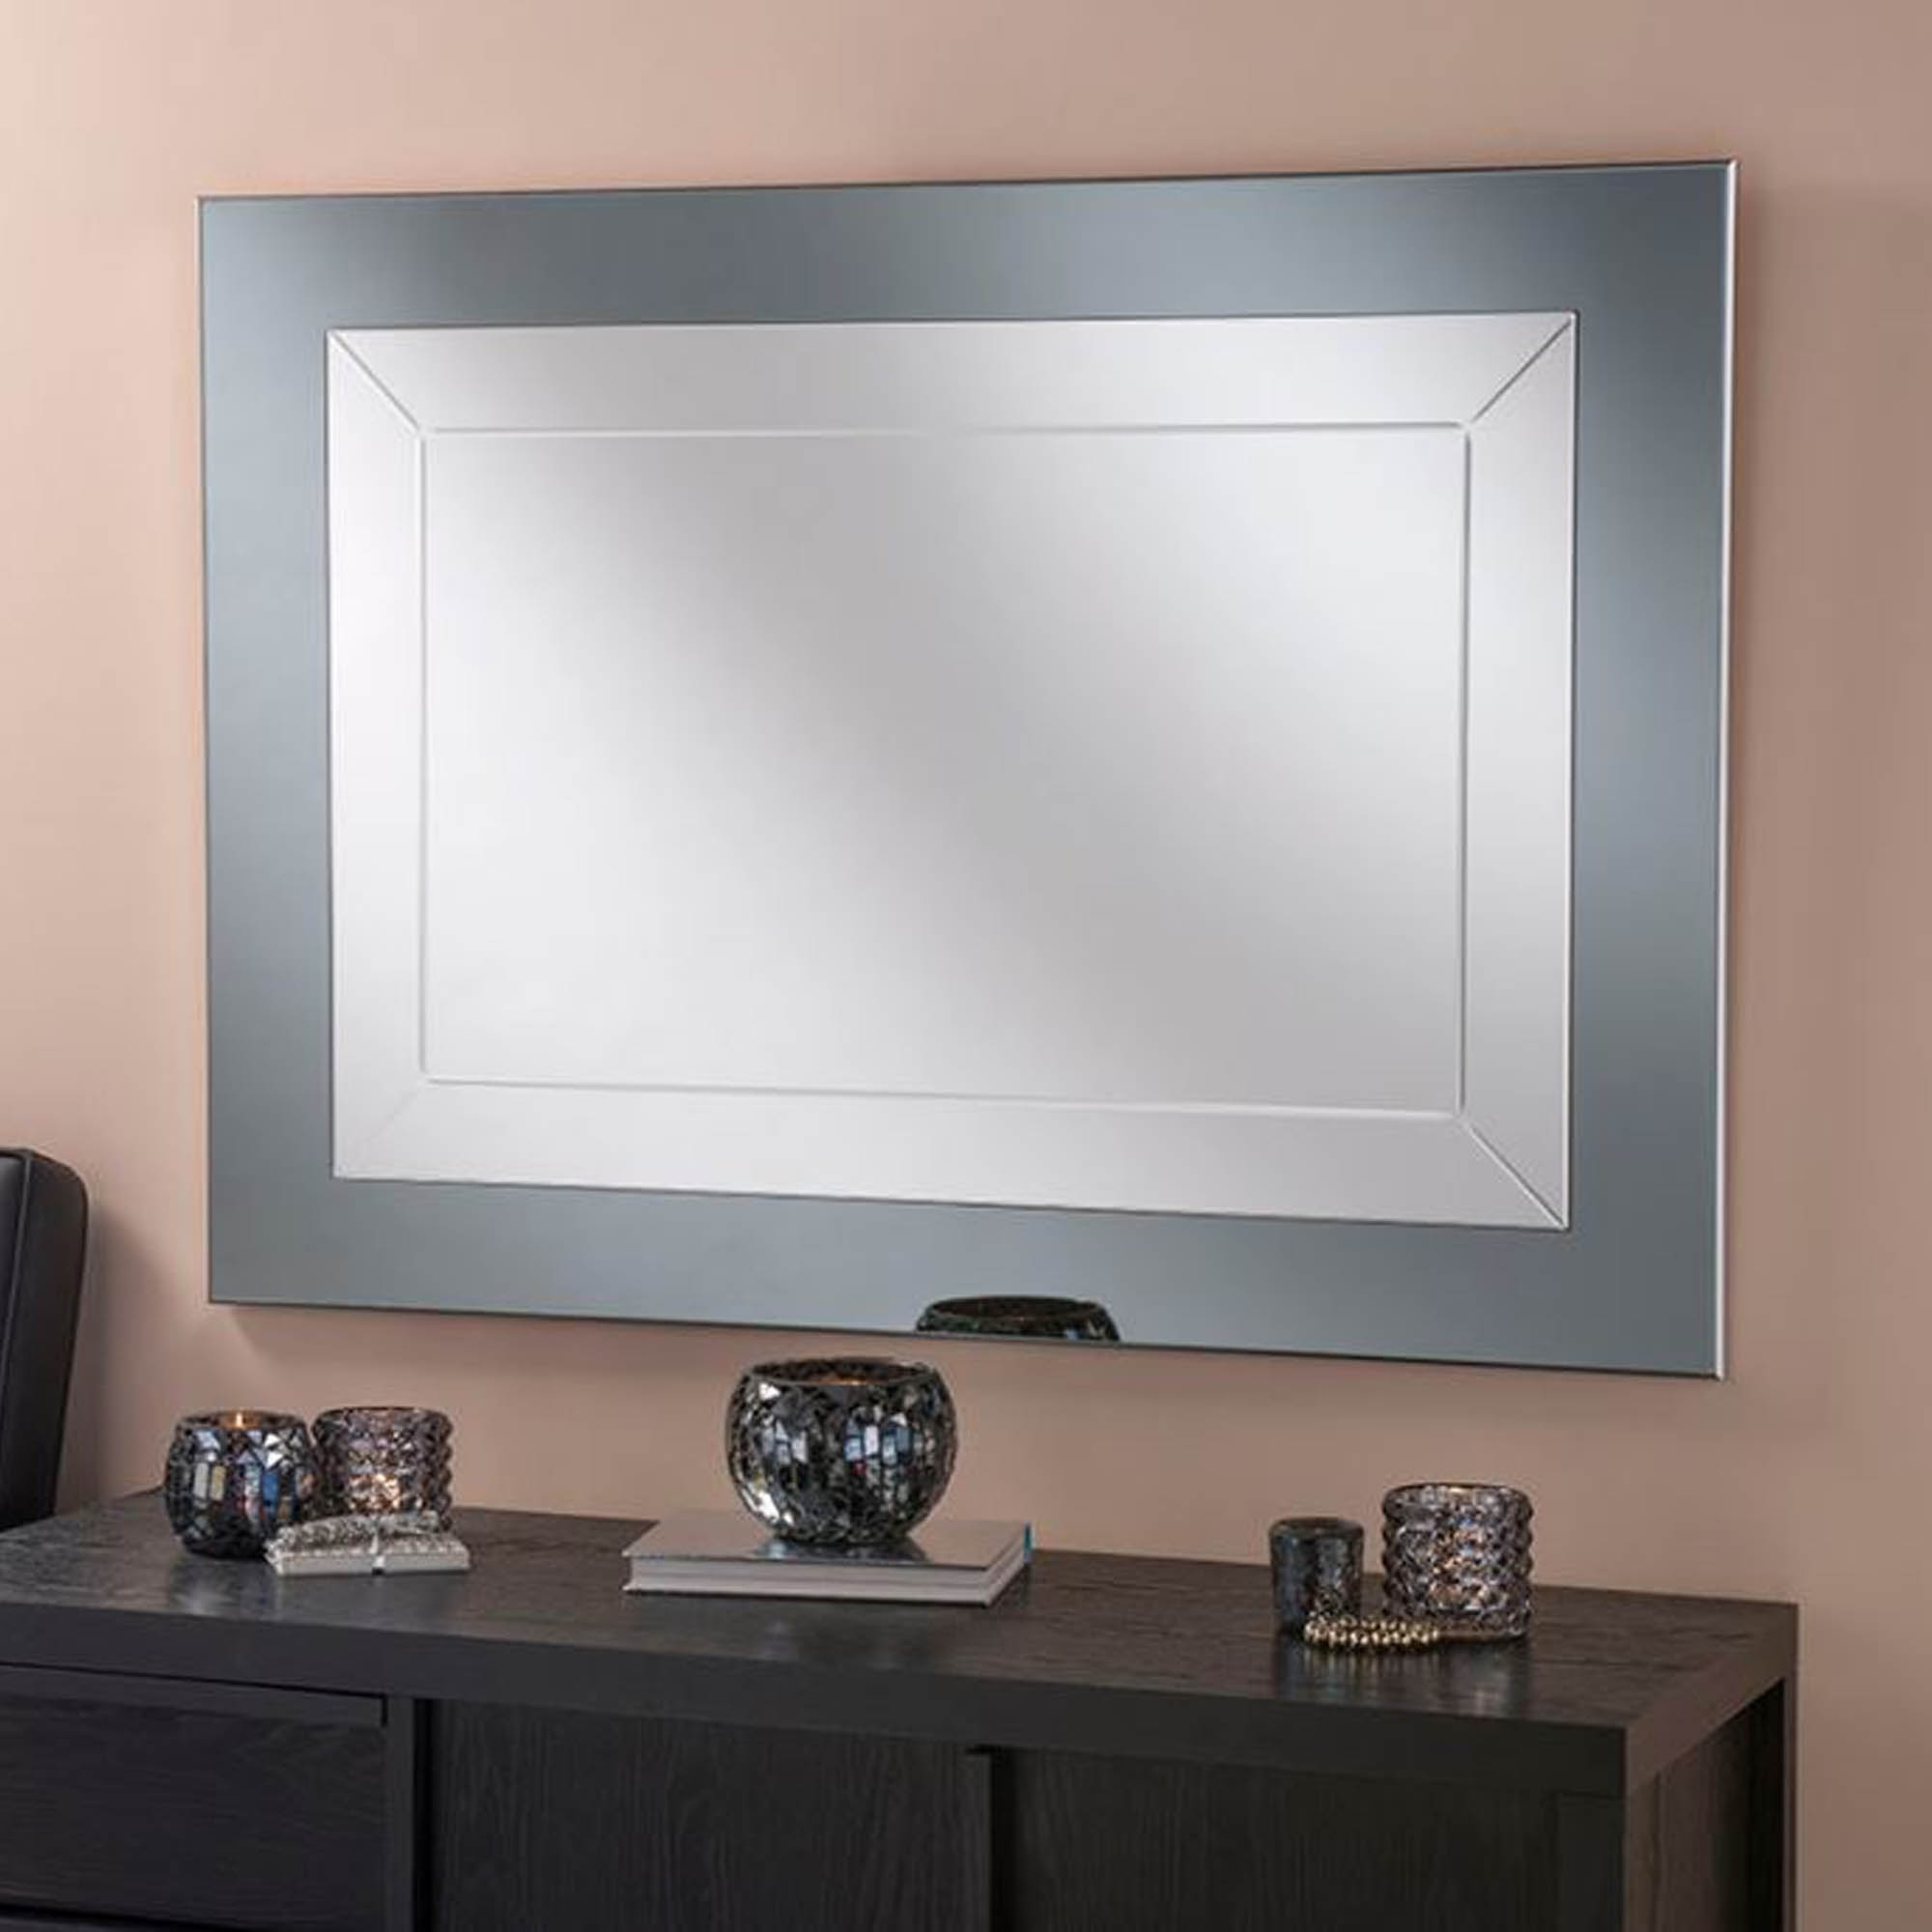 Peetz Modern Rustic Accent Mirrors Within Most Current Framed Modern Mirror Metal Framed Peetz Modern Rustic Accent Mirror (View 12 of 20)